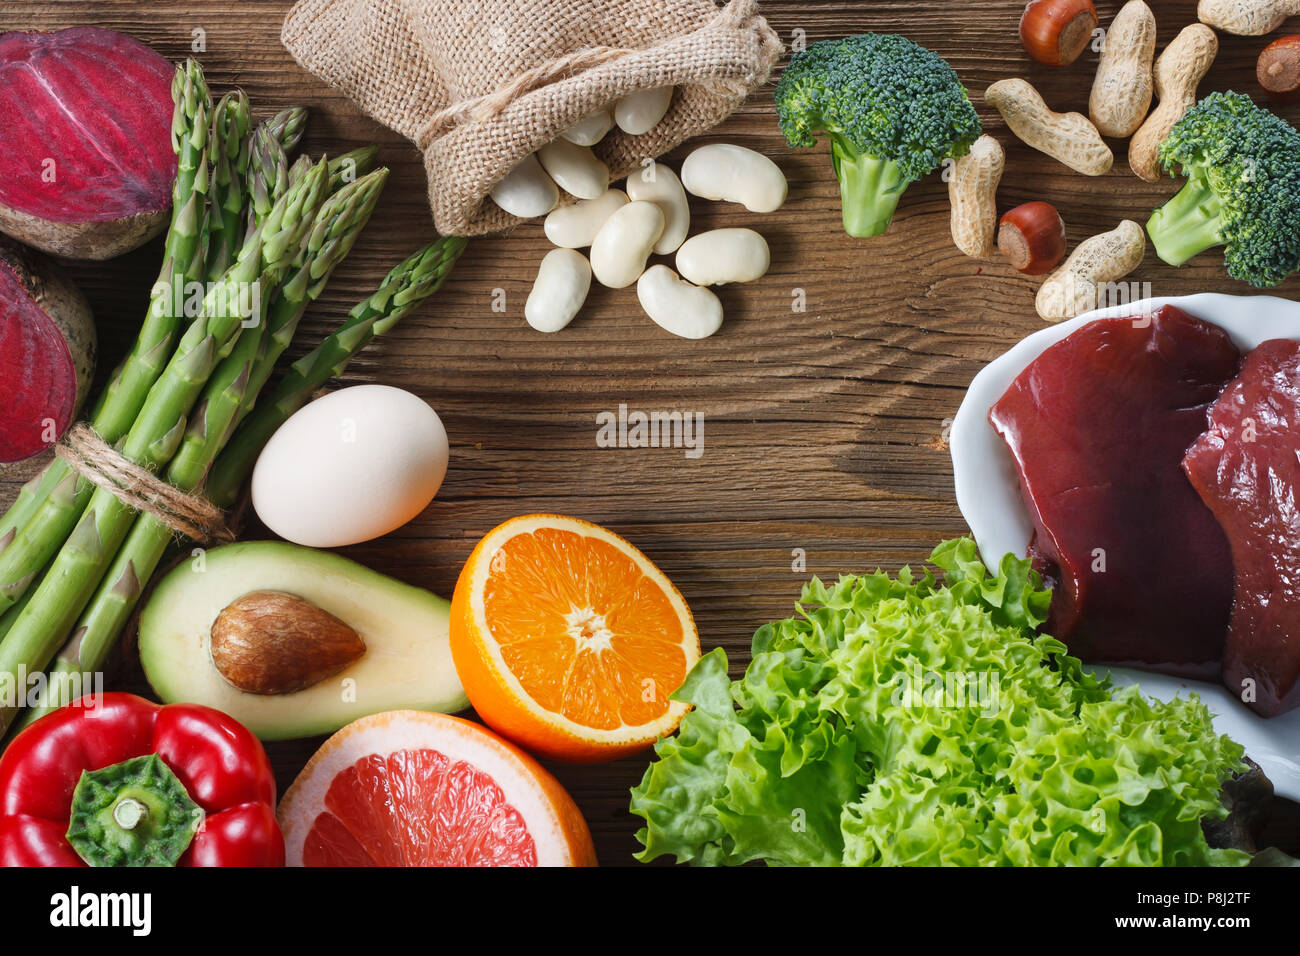 Natural sources of folic acid as liver, asparagus, broccoli, eggs, salad, avocado, paprika, nuts, orange , beetroots and beans - Stock Image